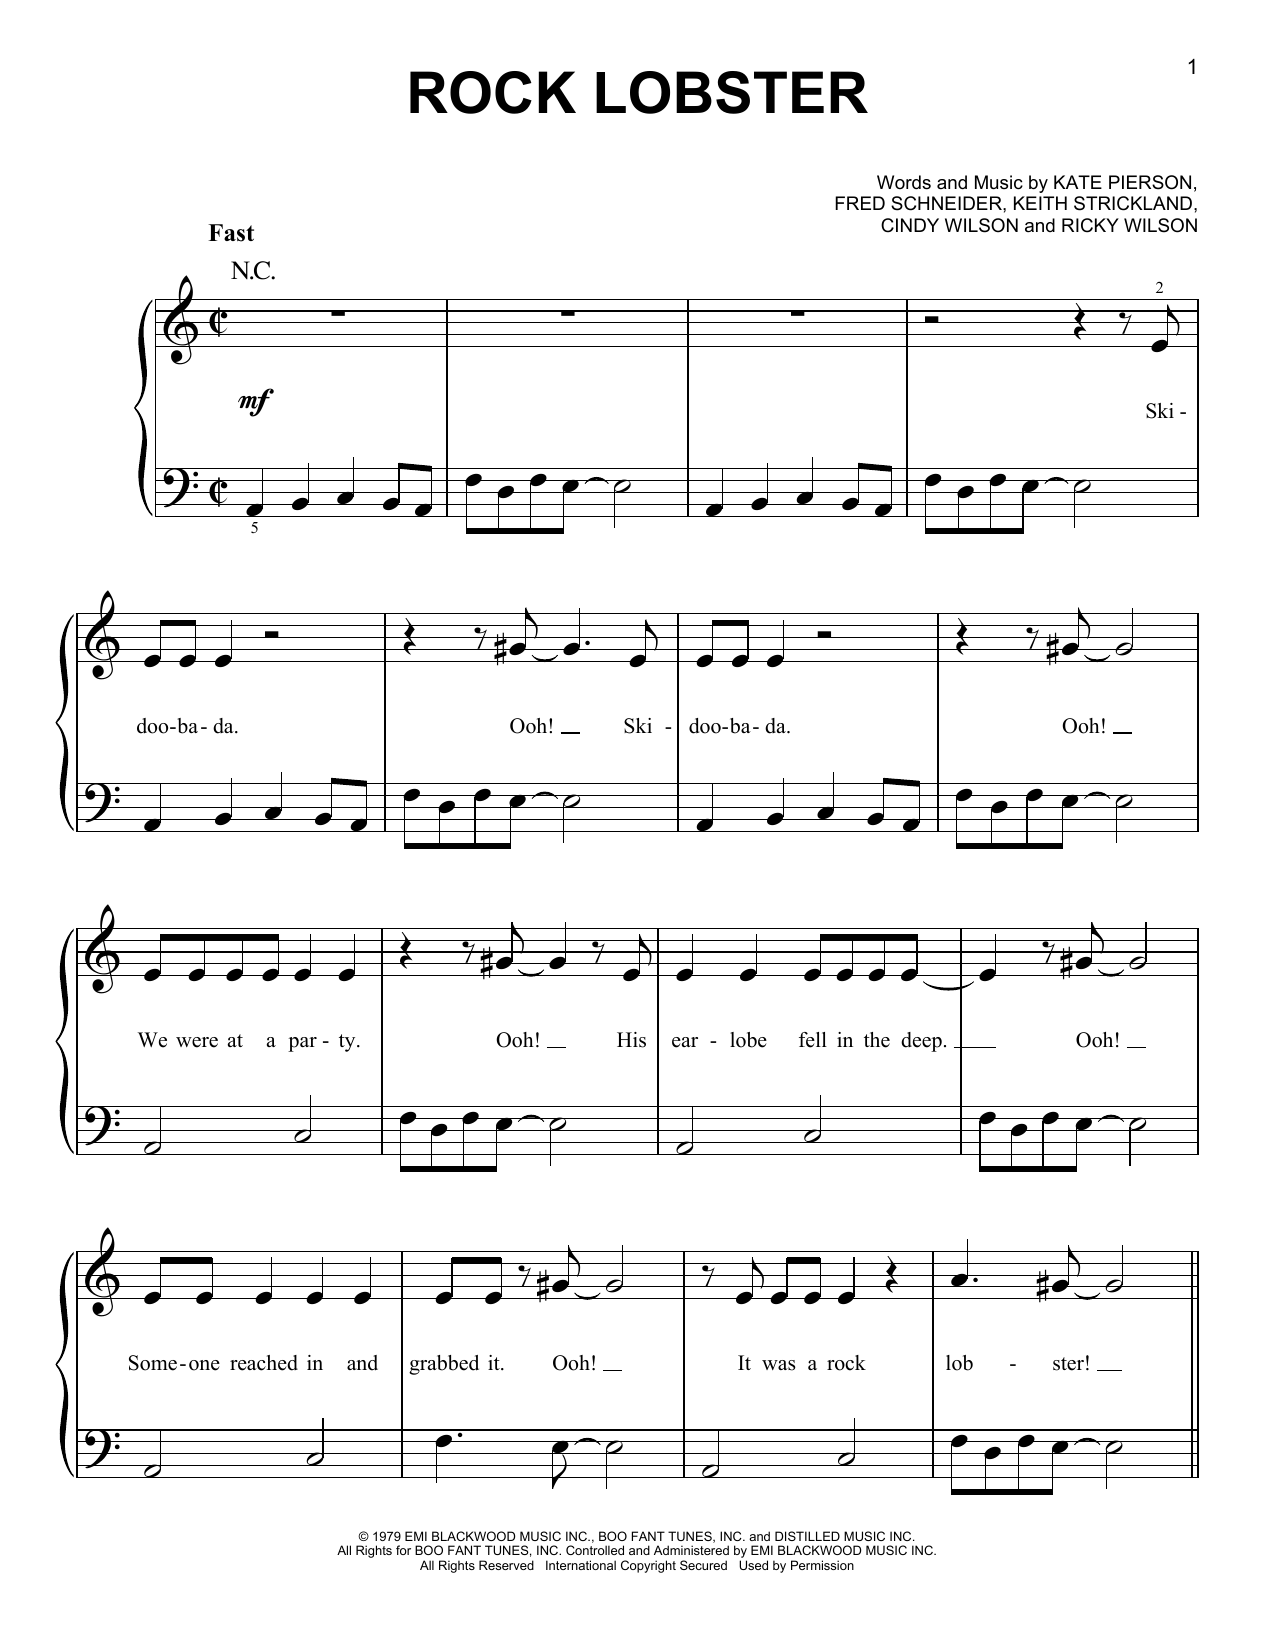 a social security number which appears in the format 123-456-7891 is an example of a(n) ____. rock lobster sheet music - Erkal.jonathandedecker.com